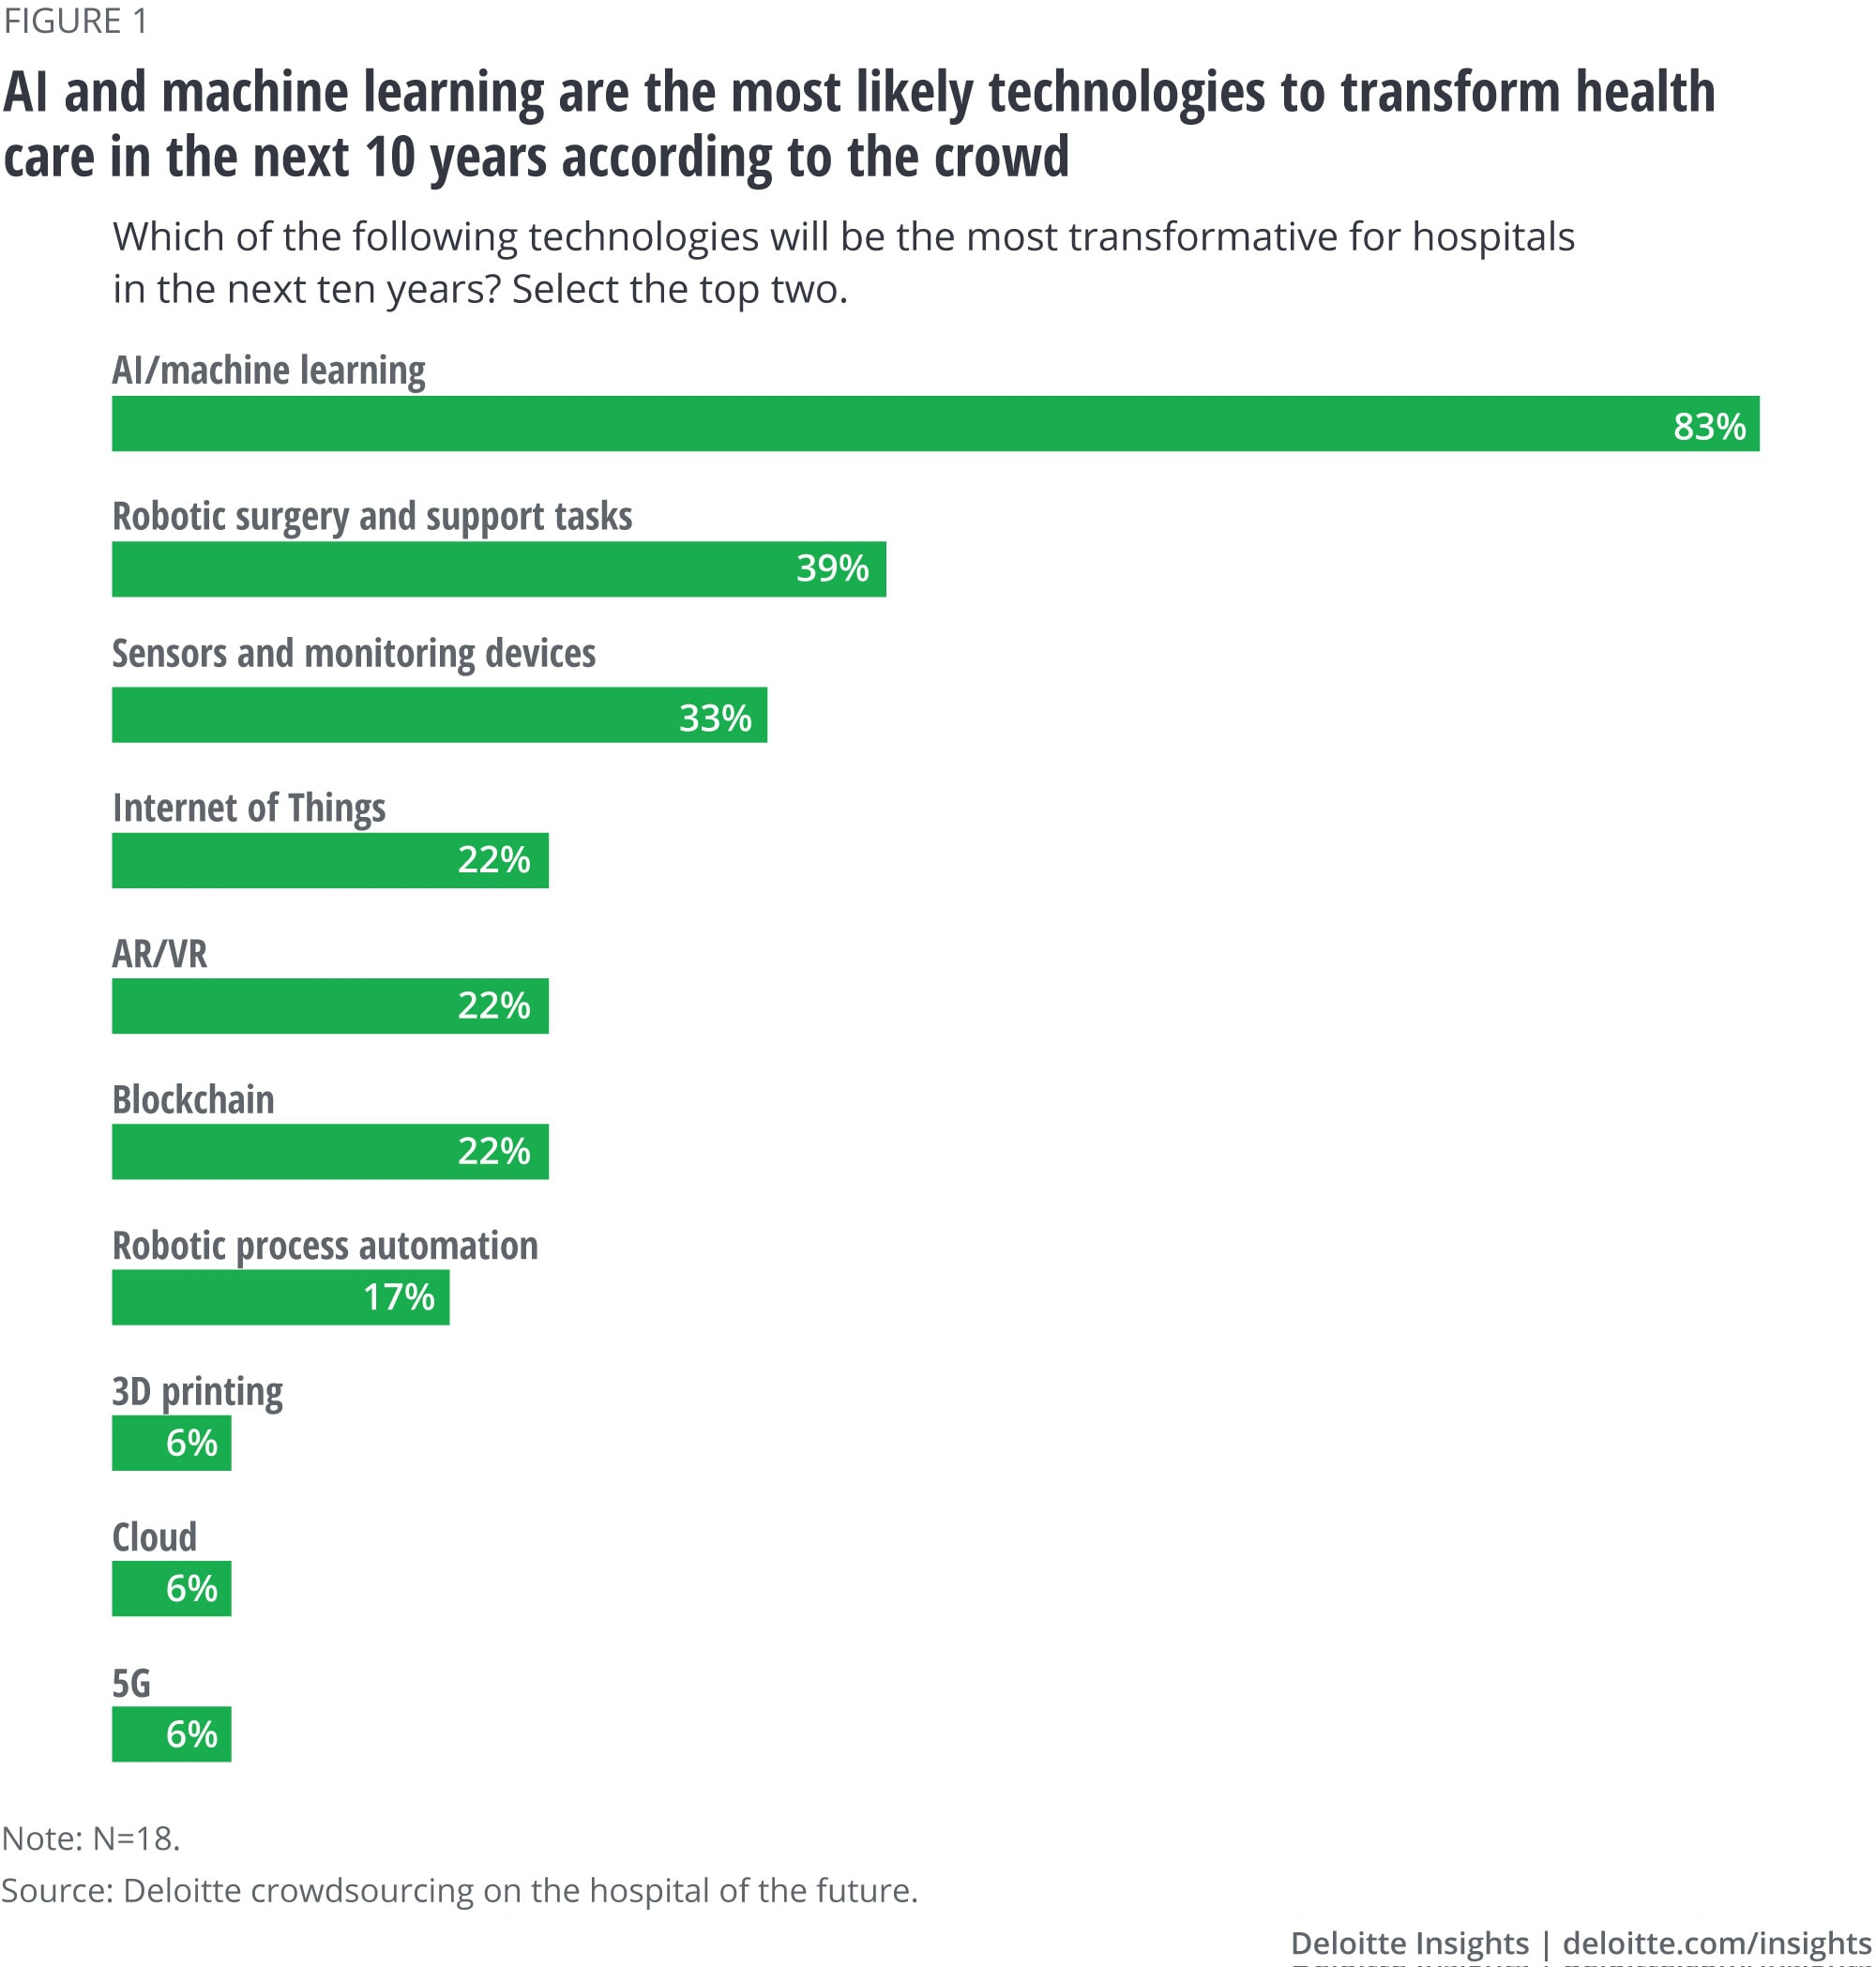 AI and machine learning are the most likely technologies to transform health care in the next 10 years according to the crowd